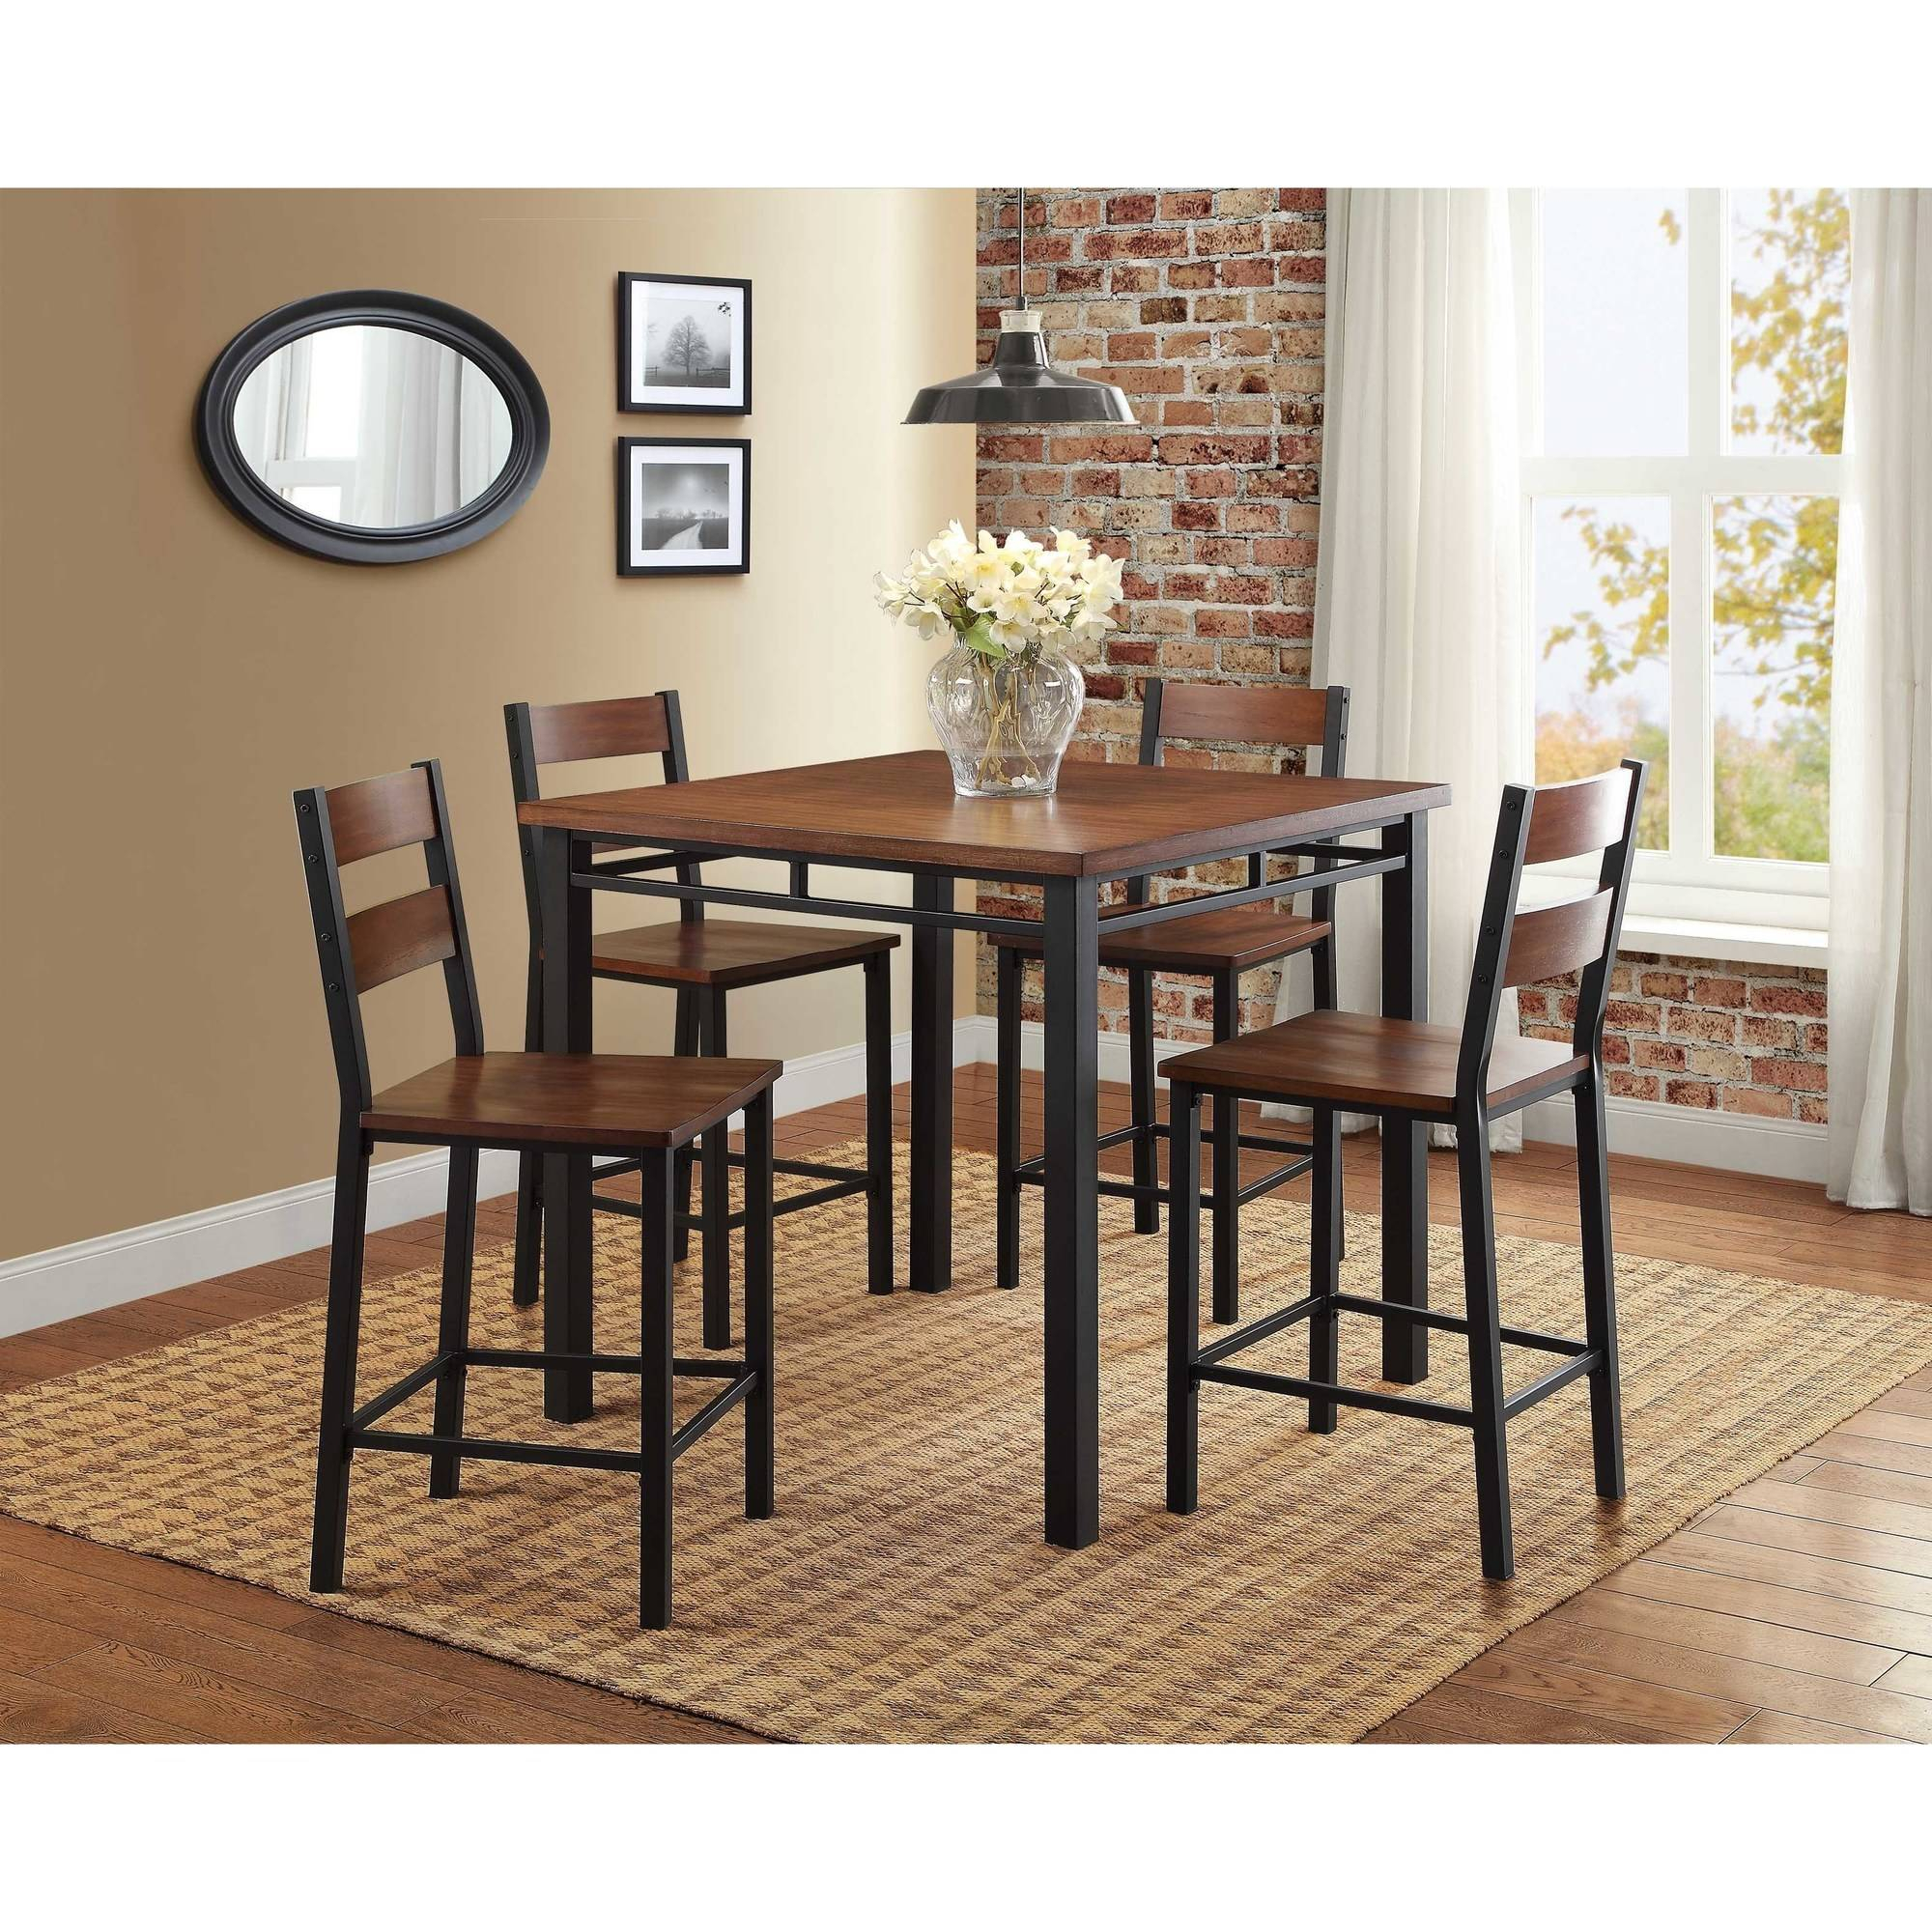 Glamorous 3 Piece Counter Height Kitchen Sets Chairs Setup Chair Throughout Recent Winsome 3 Piece Counter Height Dining Sets (Image 3 of 20)